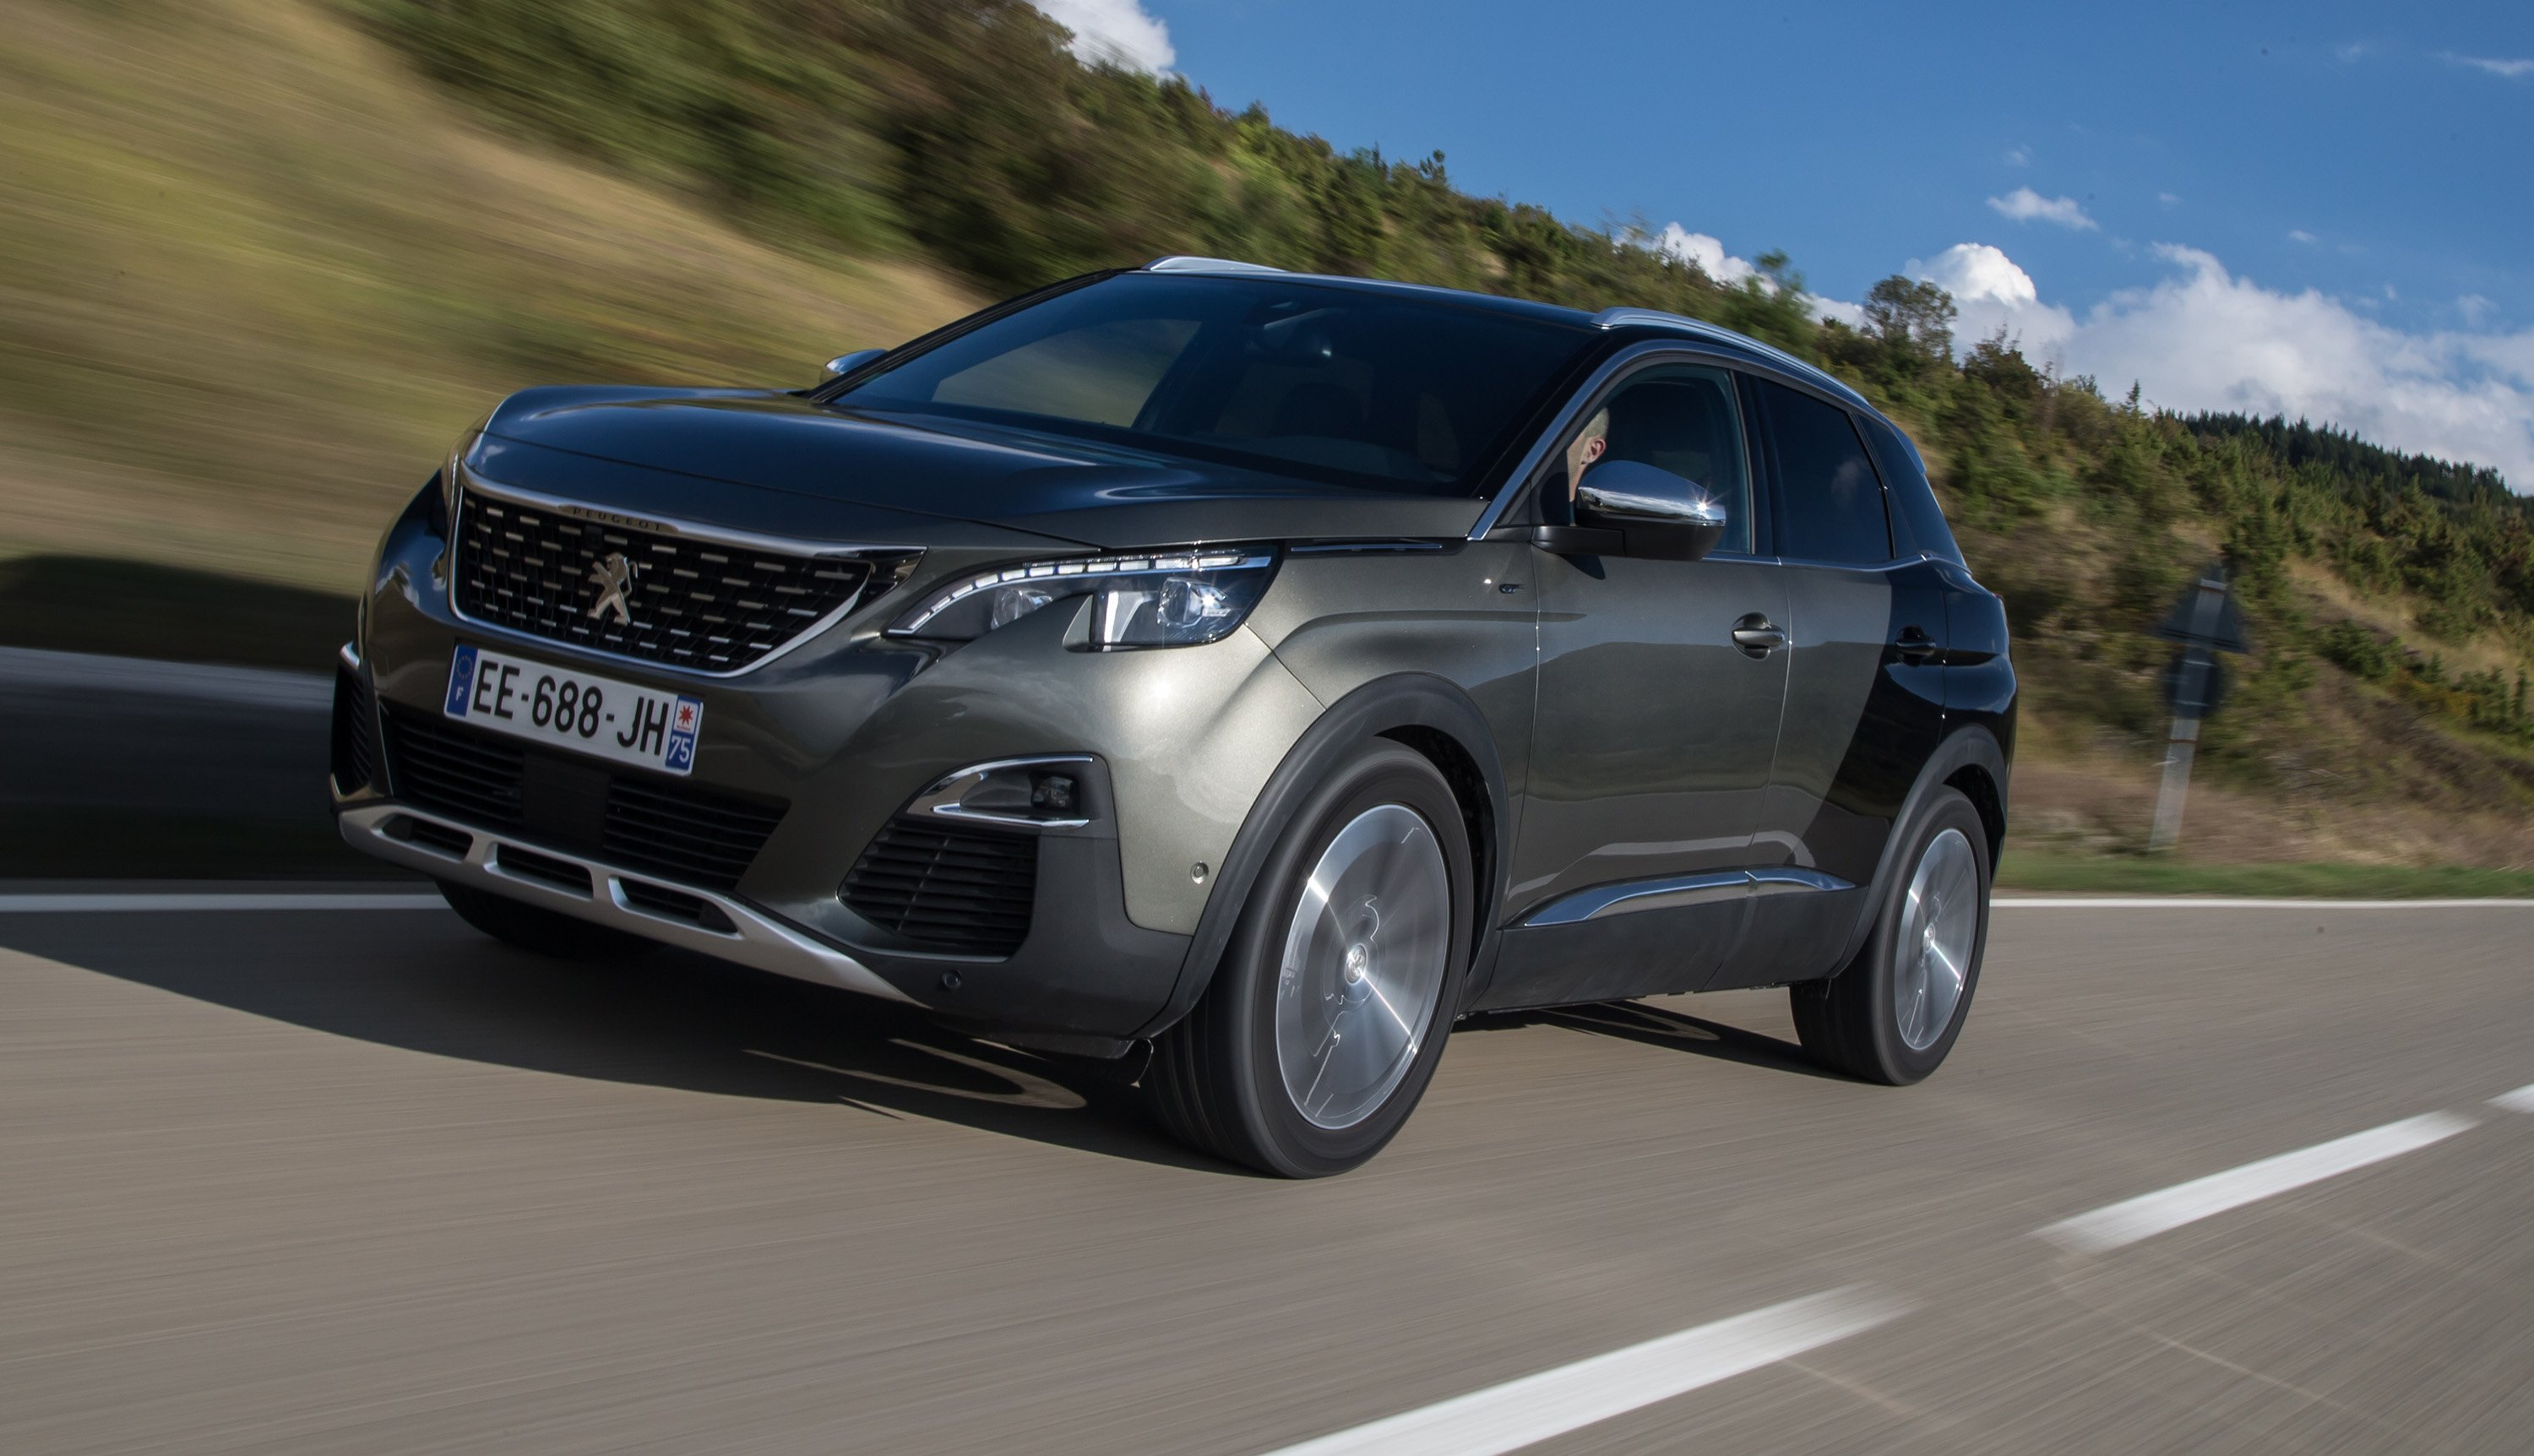 2018 Peugeot 3008 Gets Five-star ANCAP Crash Score